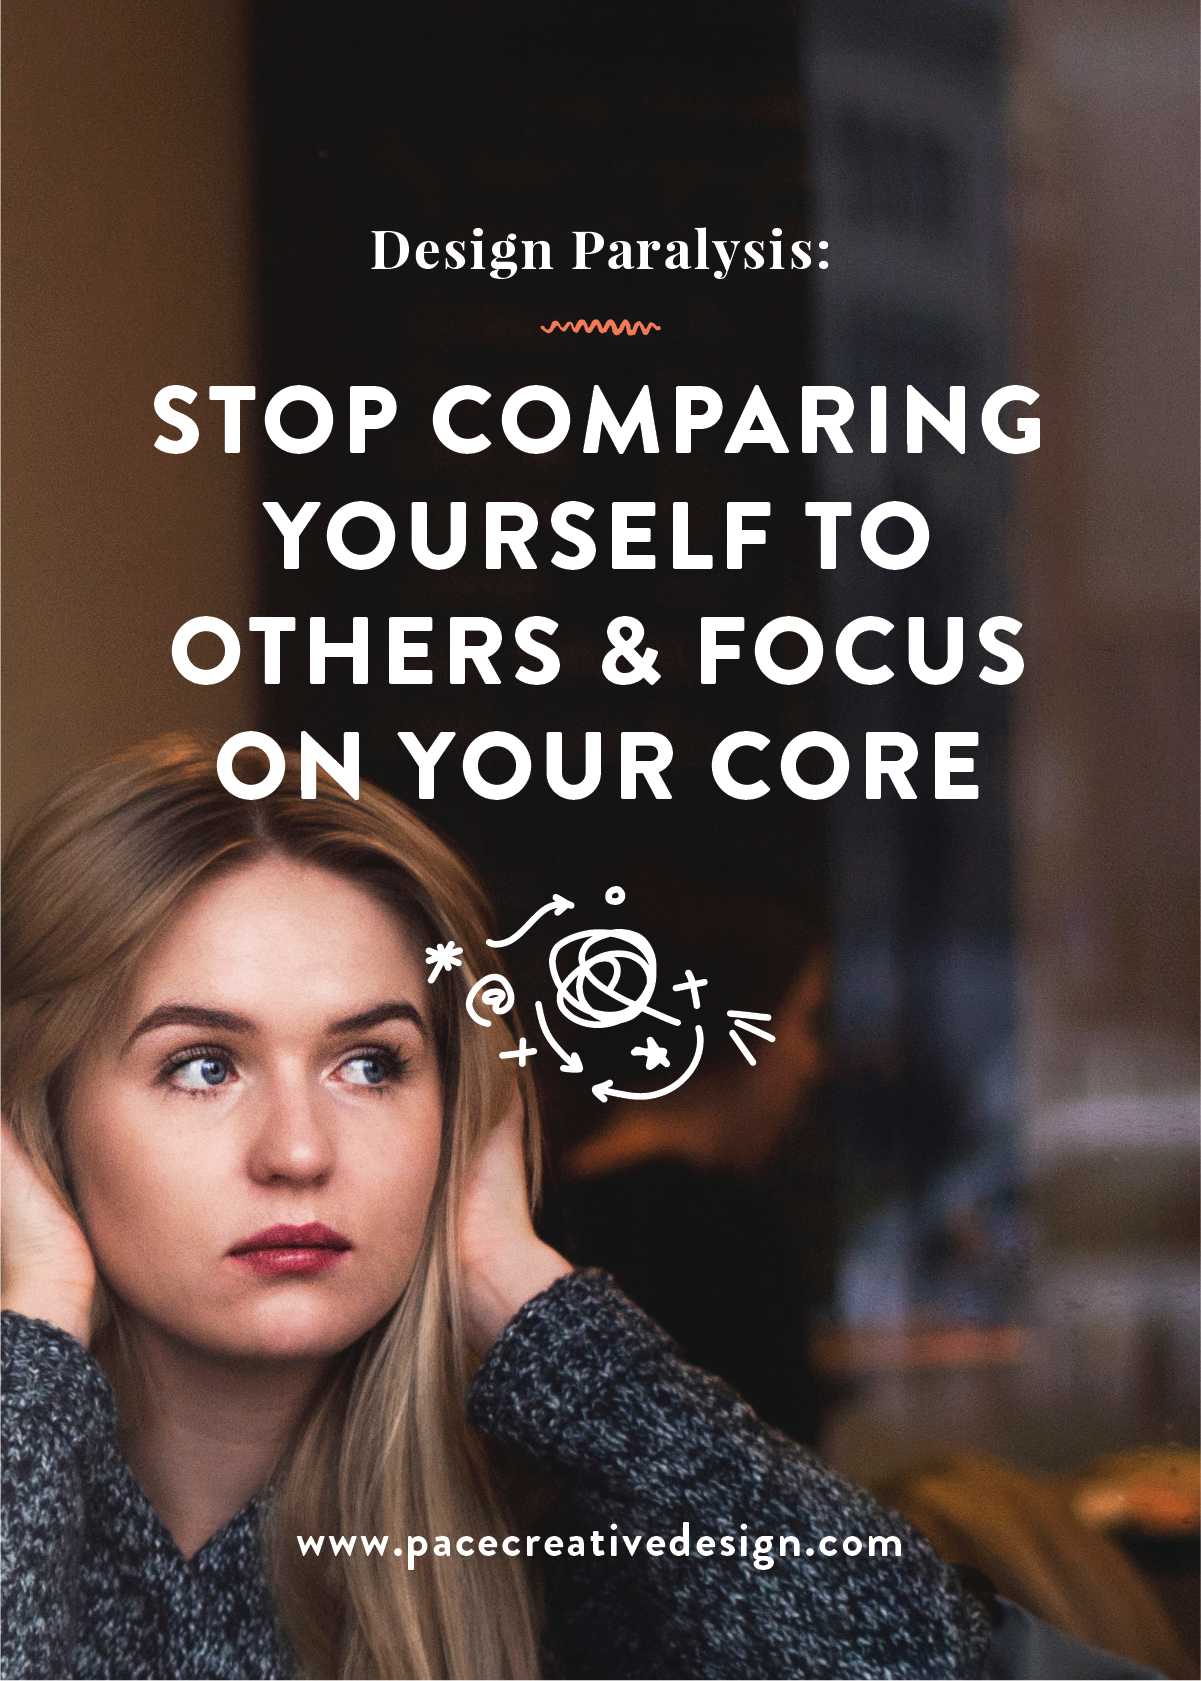 Design Paralysis: Stop Comparing Yourself to Others and Focus on Your Core | Pace Creative Design Studio